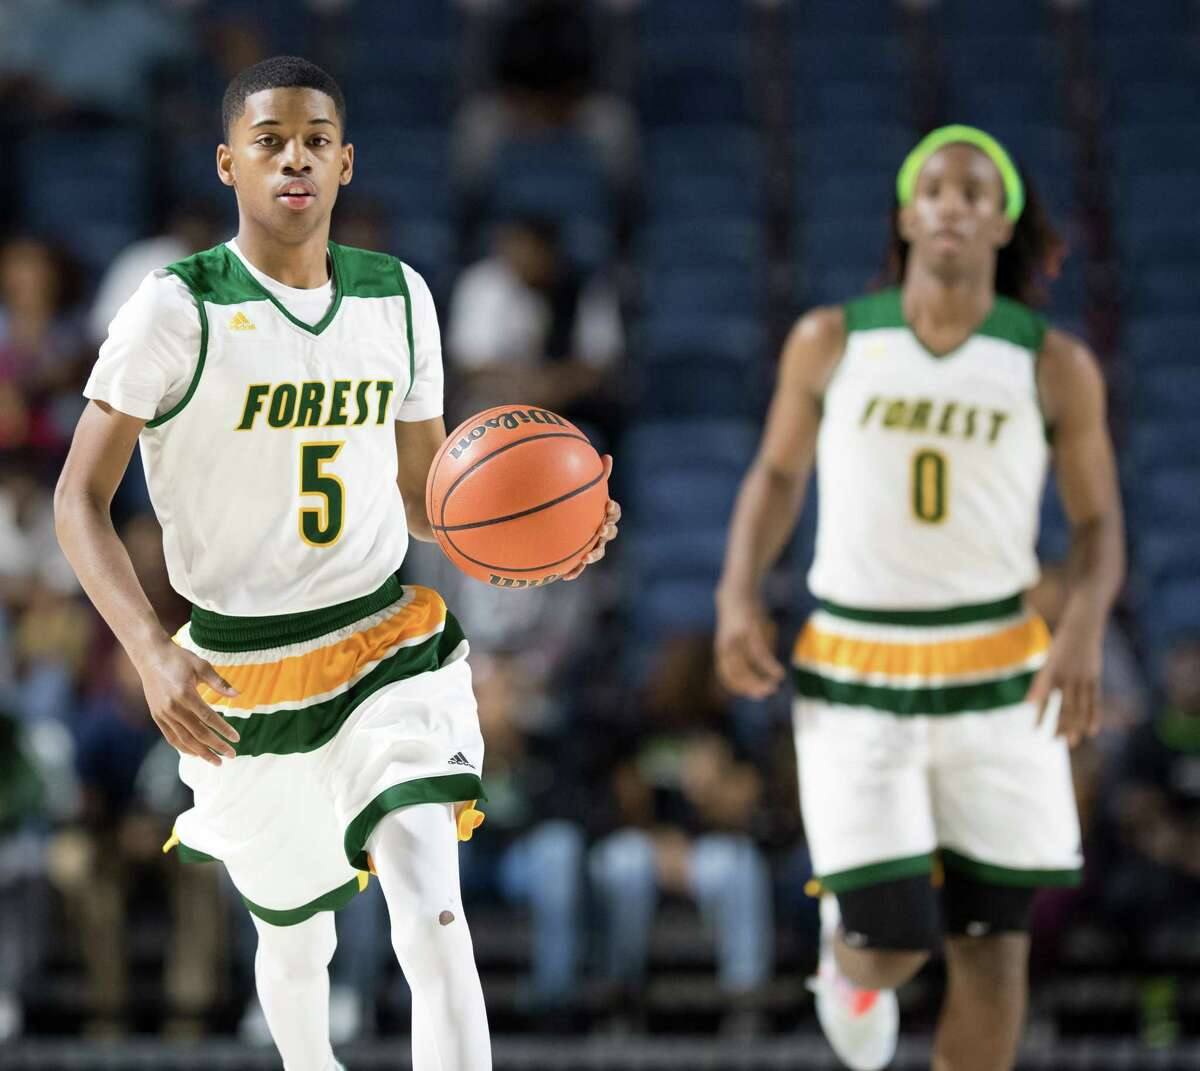 Feb. 28: Klein Forest 82, Westfield 67 Reggie Miller (5) of the Klein Forest Eagles brings the ball up the court against the Westfield Mustangs in a 6A Bi-District playoff game on Tuesday, February 28, 2017 at the Delmar Fieldhouse in Houston, Texas.